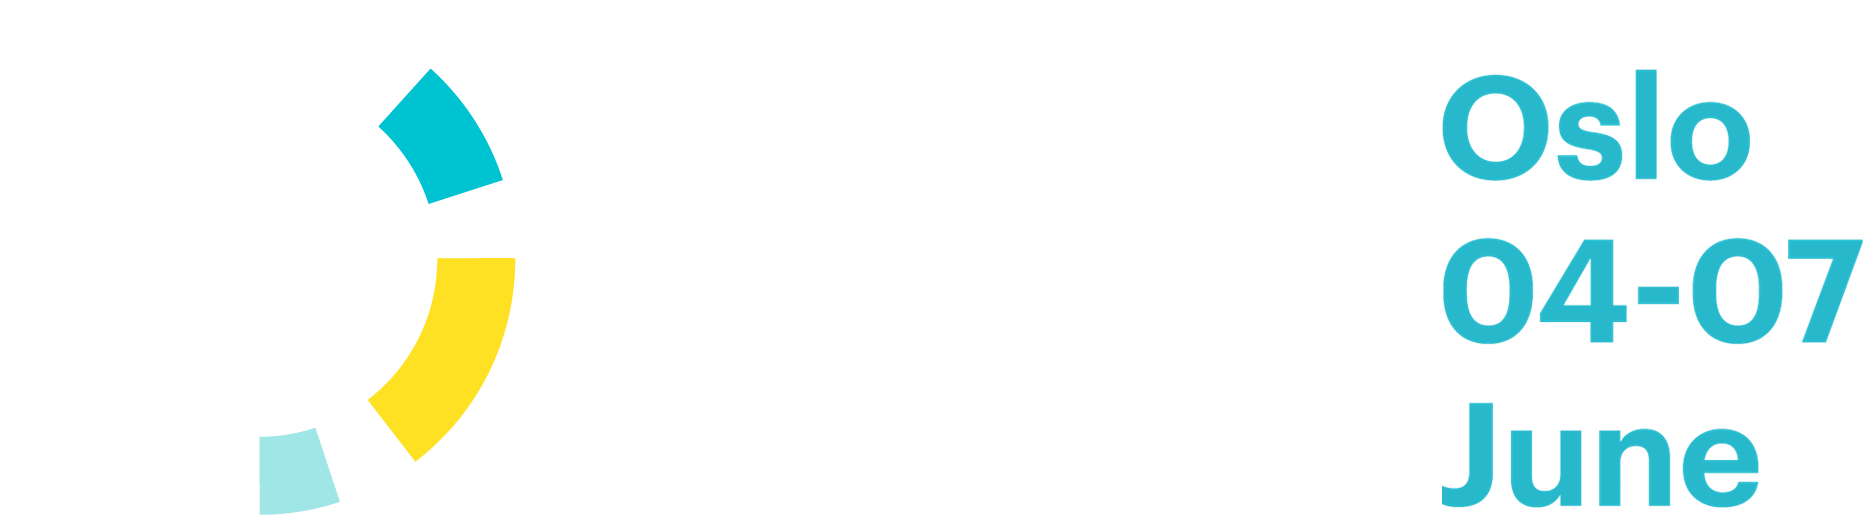 Nor-Shipping 2019 logo